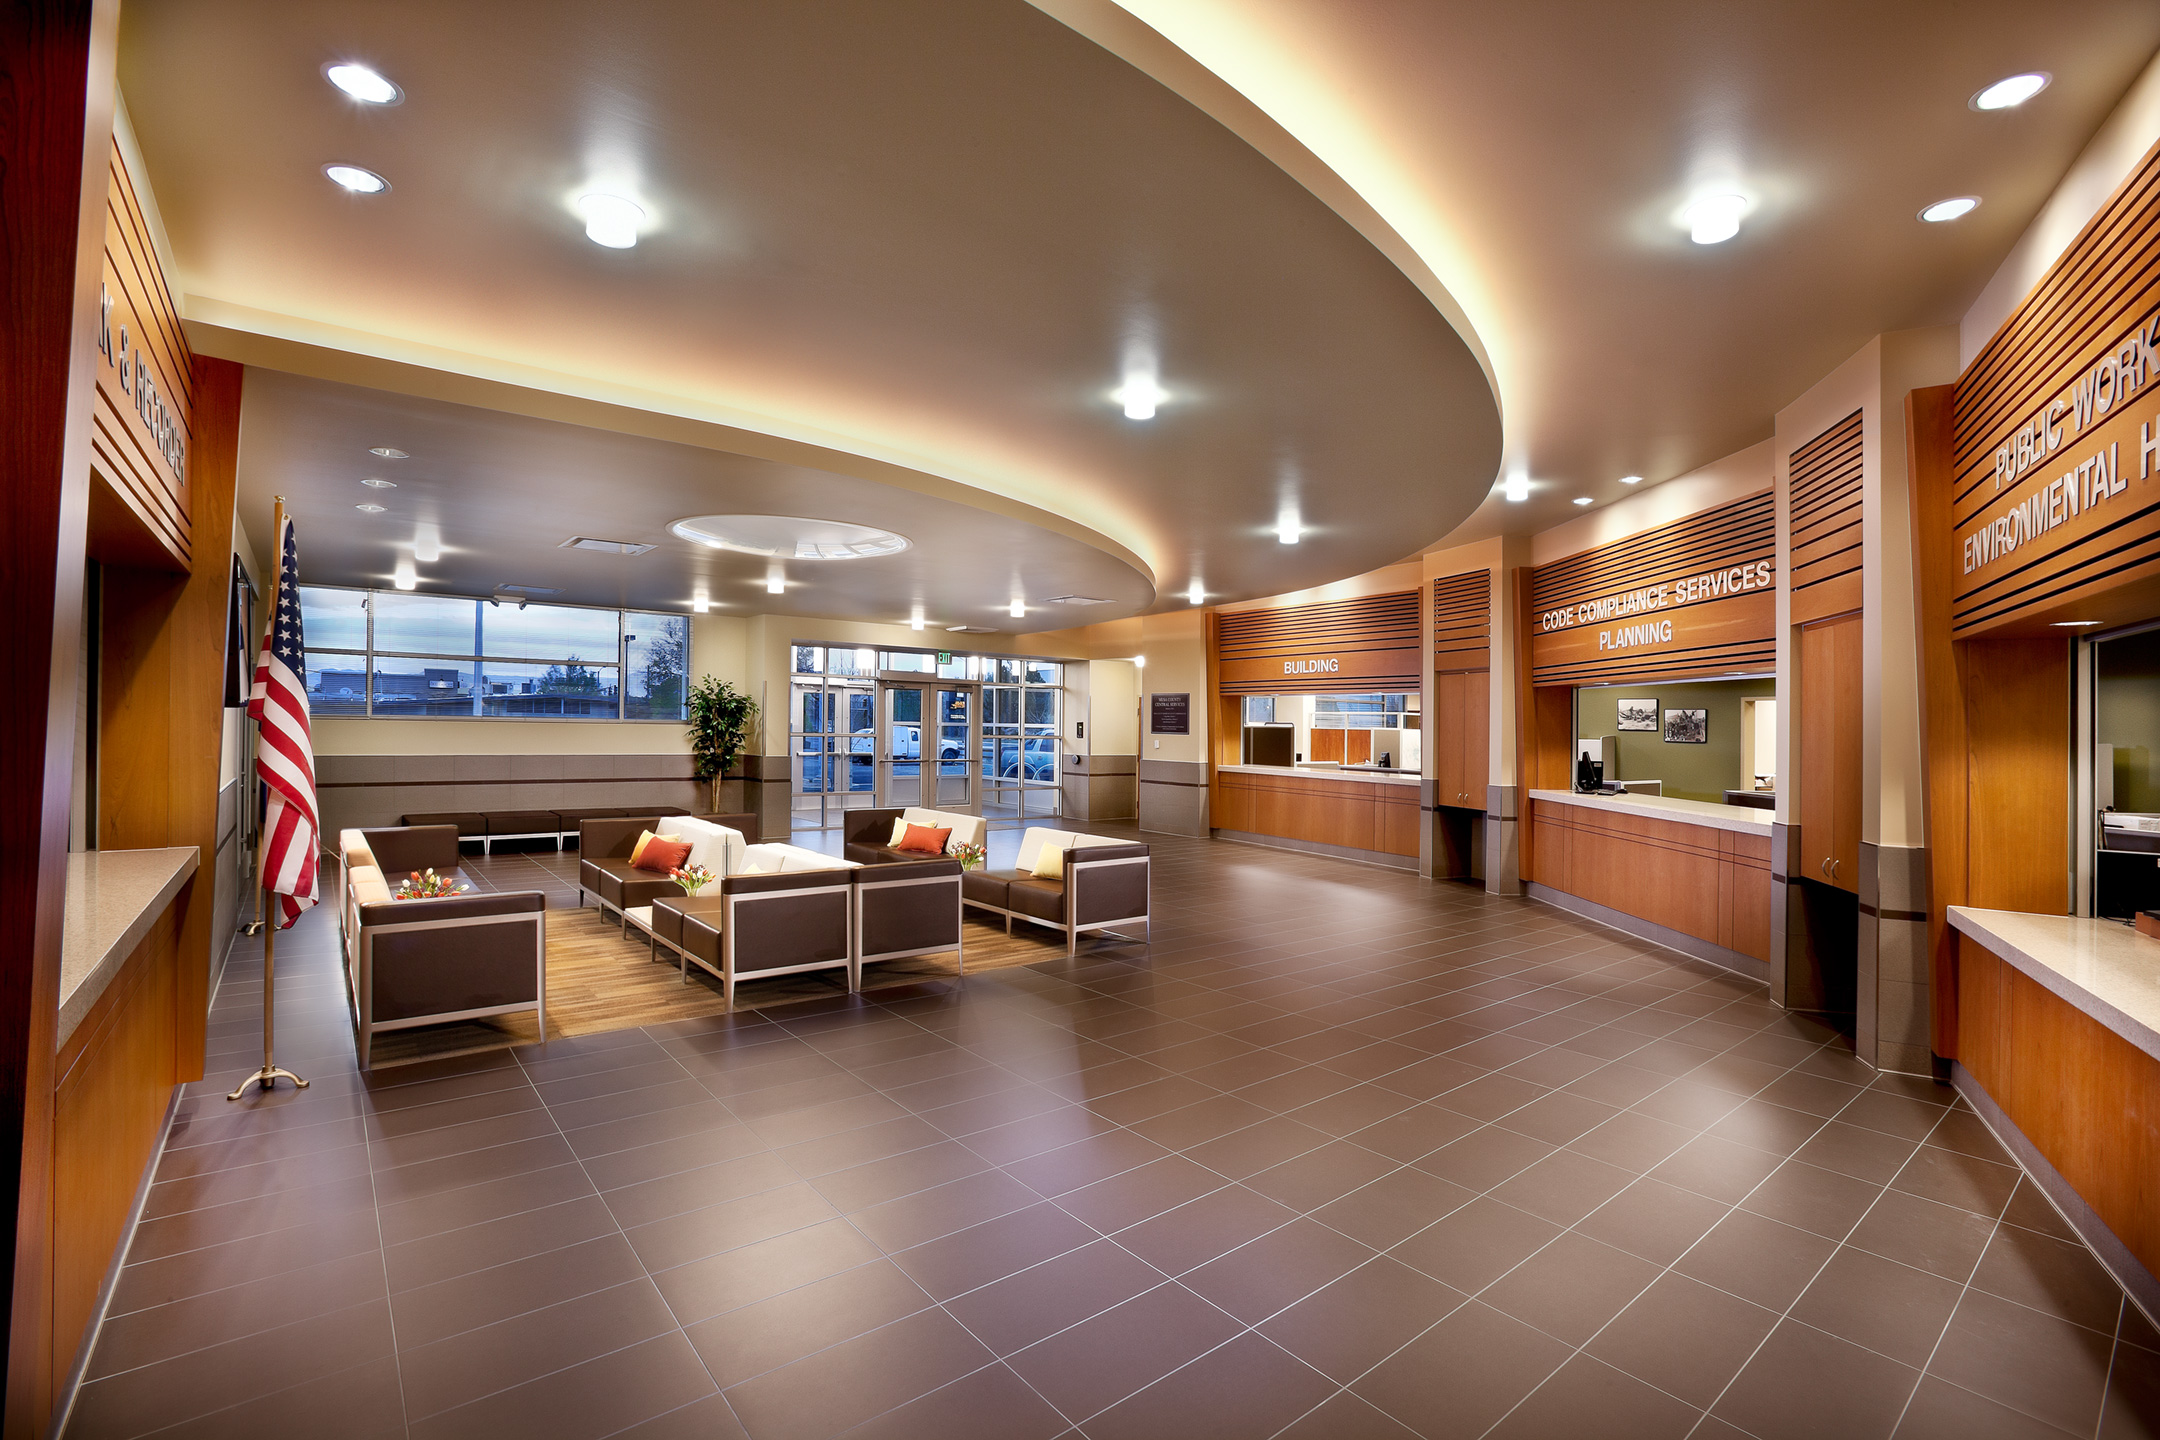 MCCS-Lobby-2-(repaired-ceiling-lights)-©-Ken-Redding-2012.jpg